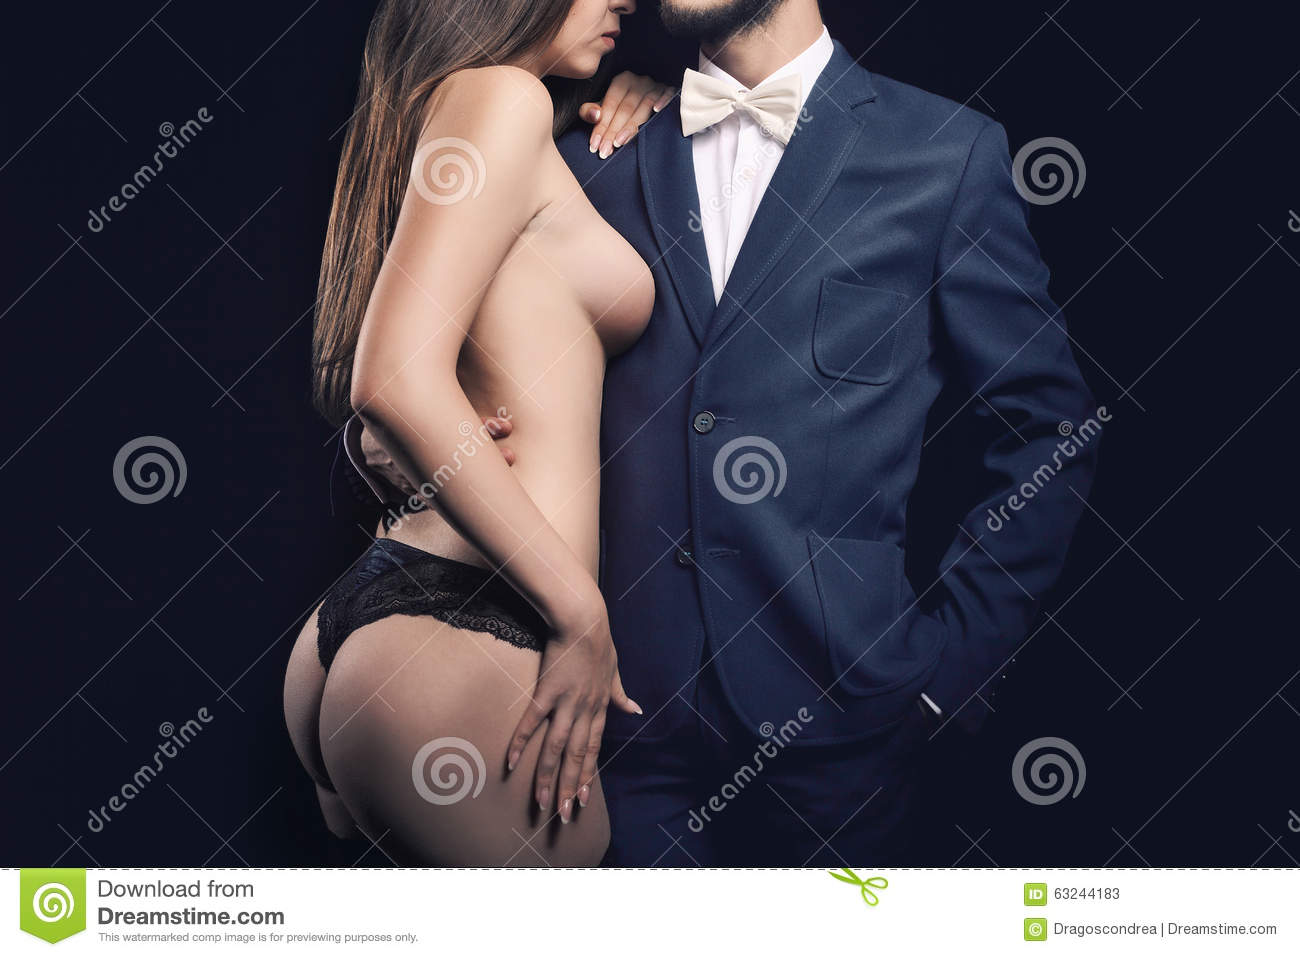 With you Erotica men and women can recommend